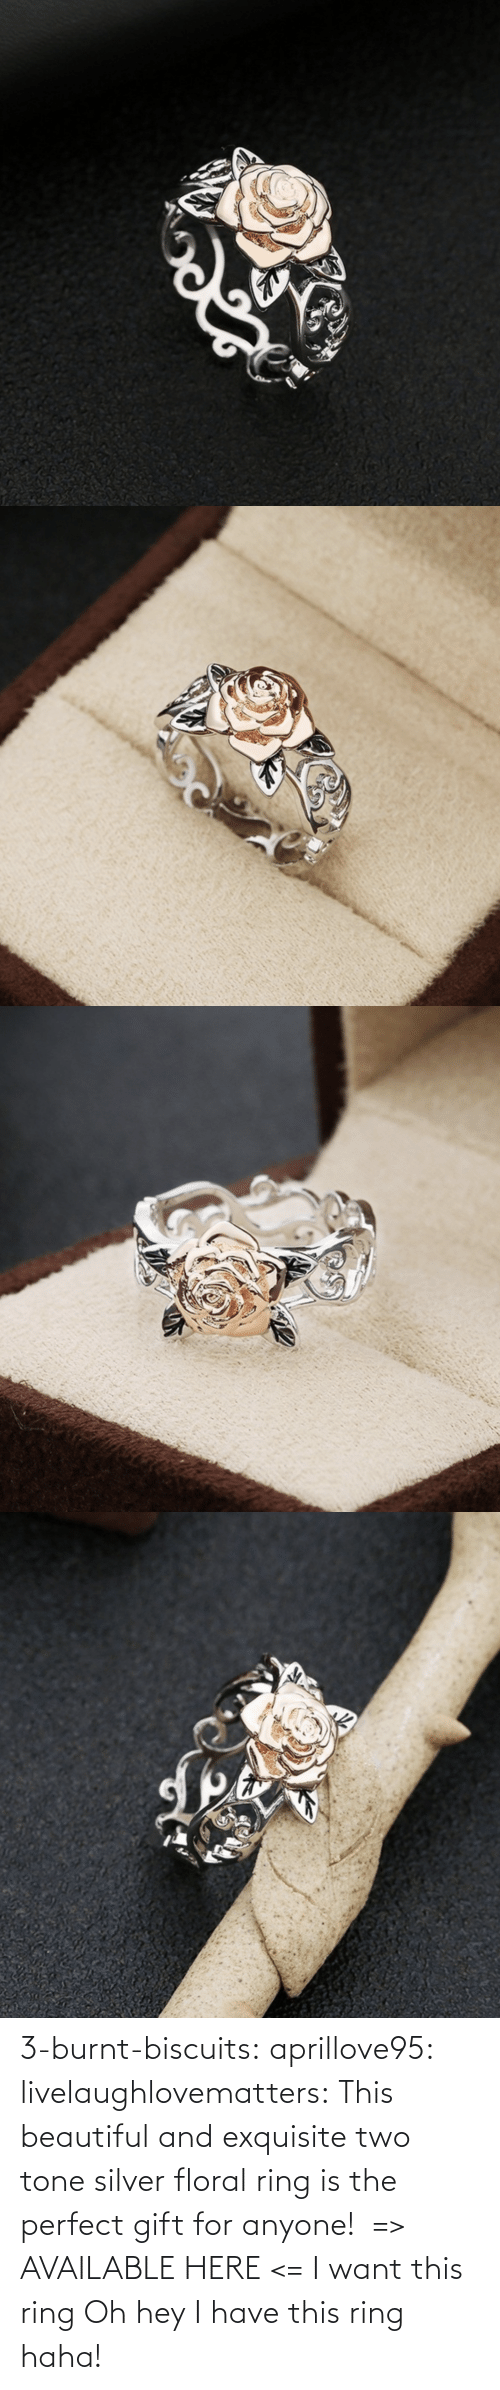 anyone: 3-burnt-biscuits: aprillove95:  livelaughlovematters:  This beautiful and exquisite two tone silver floral ring is the perfect gift for anyone!  => AVAILABLE HERE <=    I want this ring     Oh hey I have this ring haha!